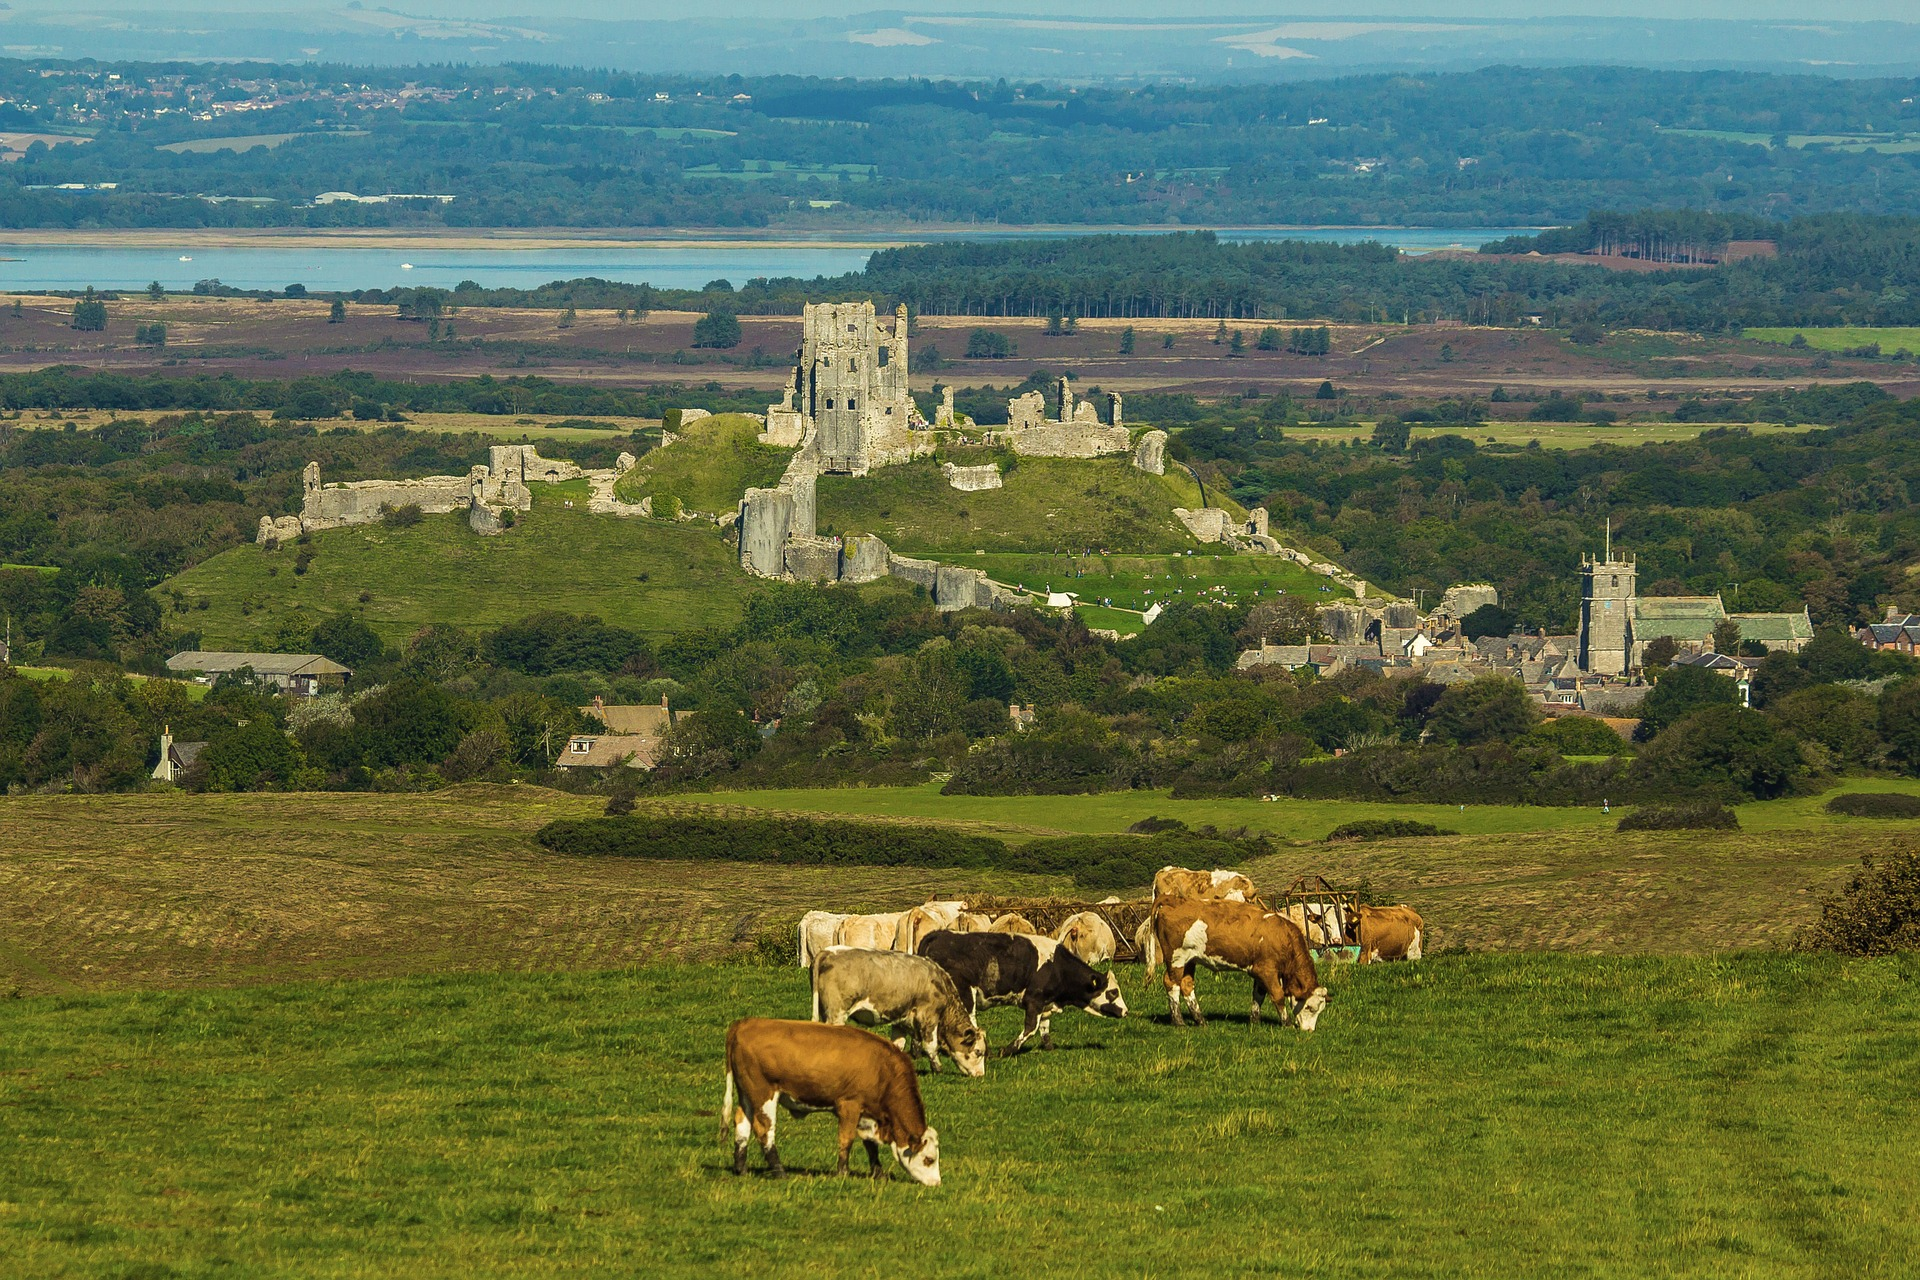 Cows grazing in a field in front of a medieval castle in the rolling hills of England